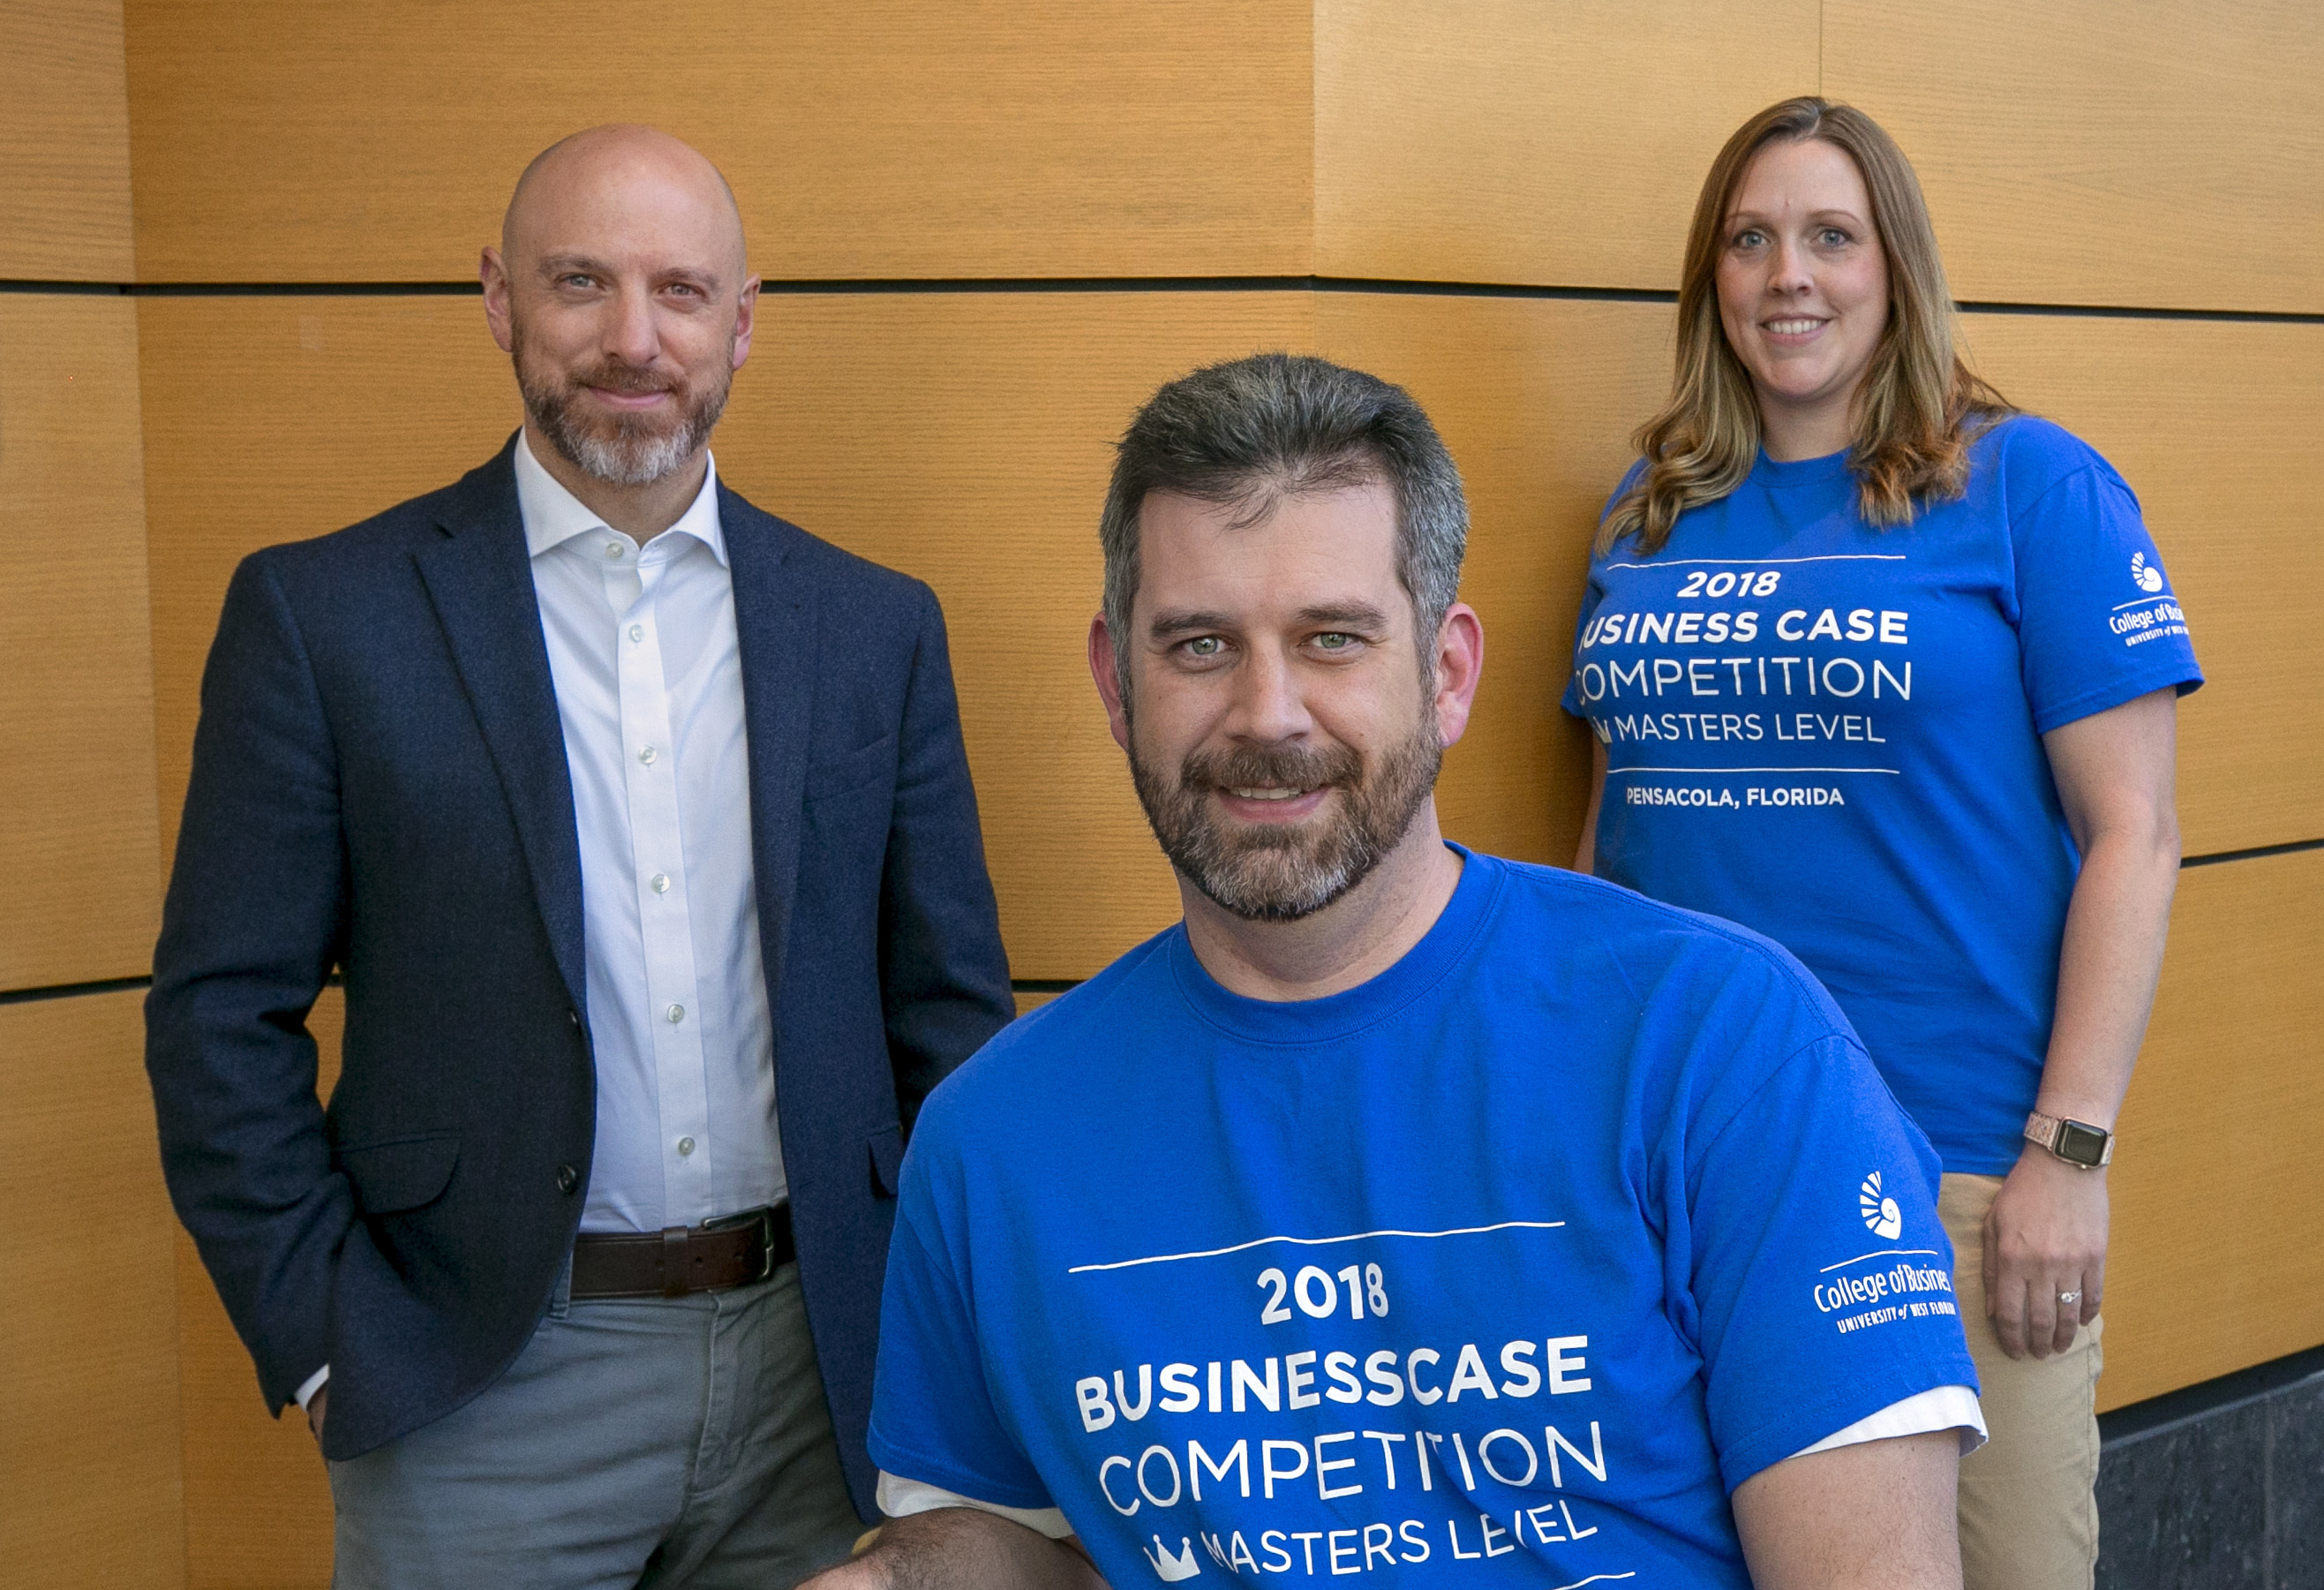 Rs3606 business case competition winners1 2